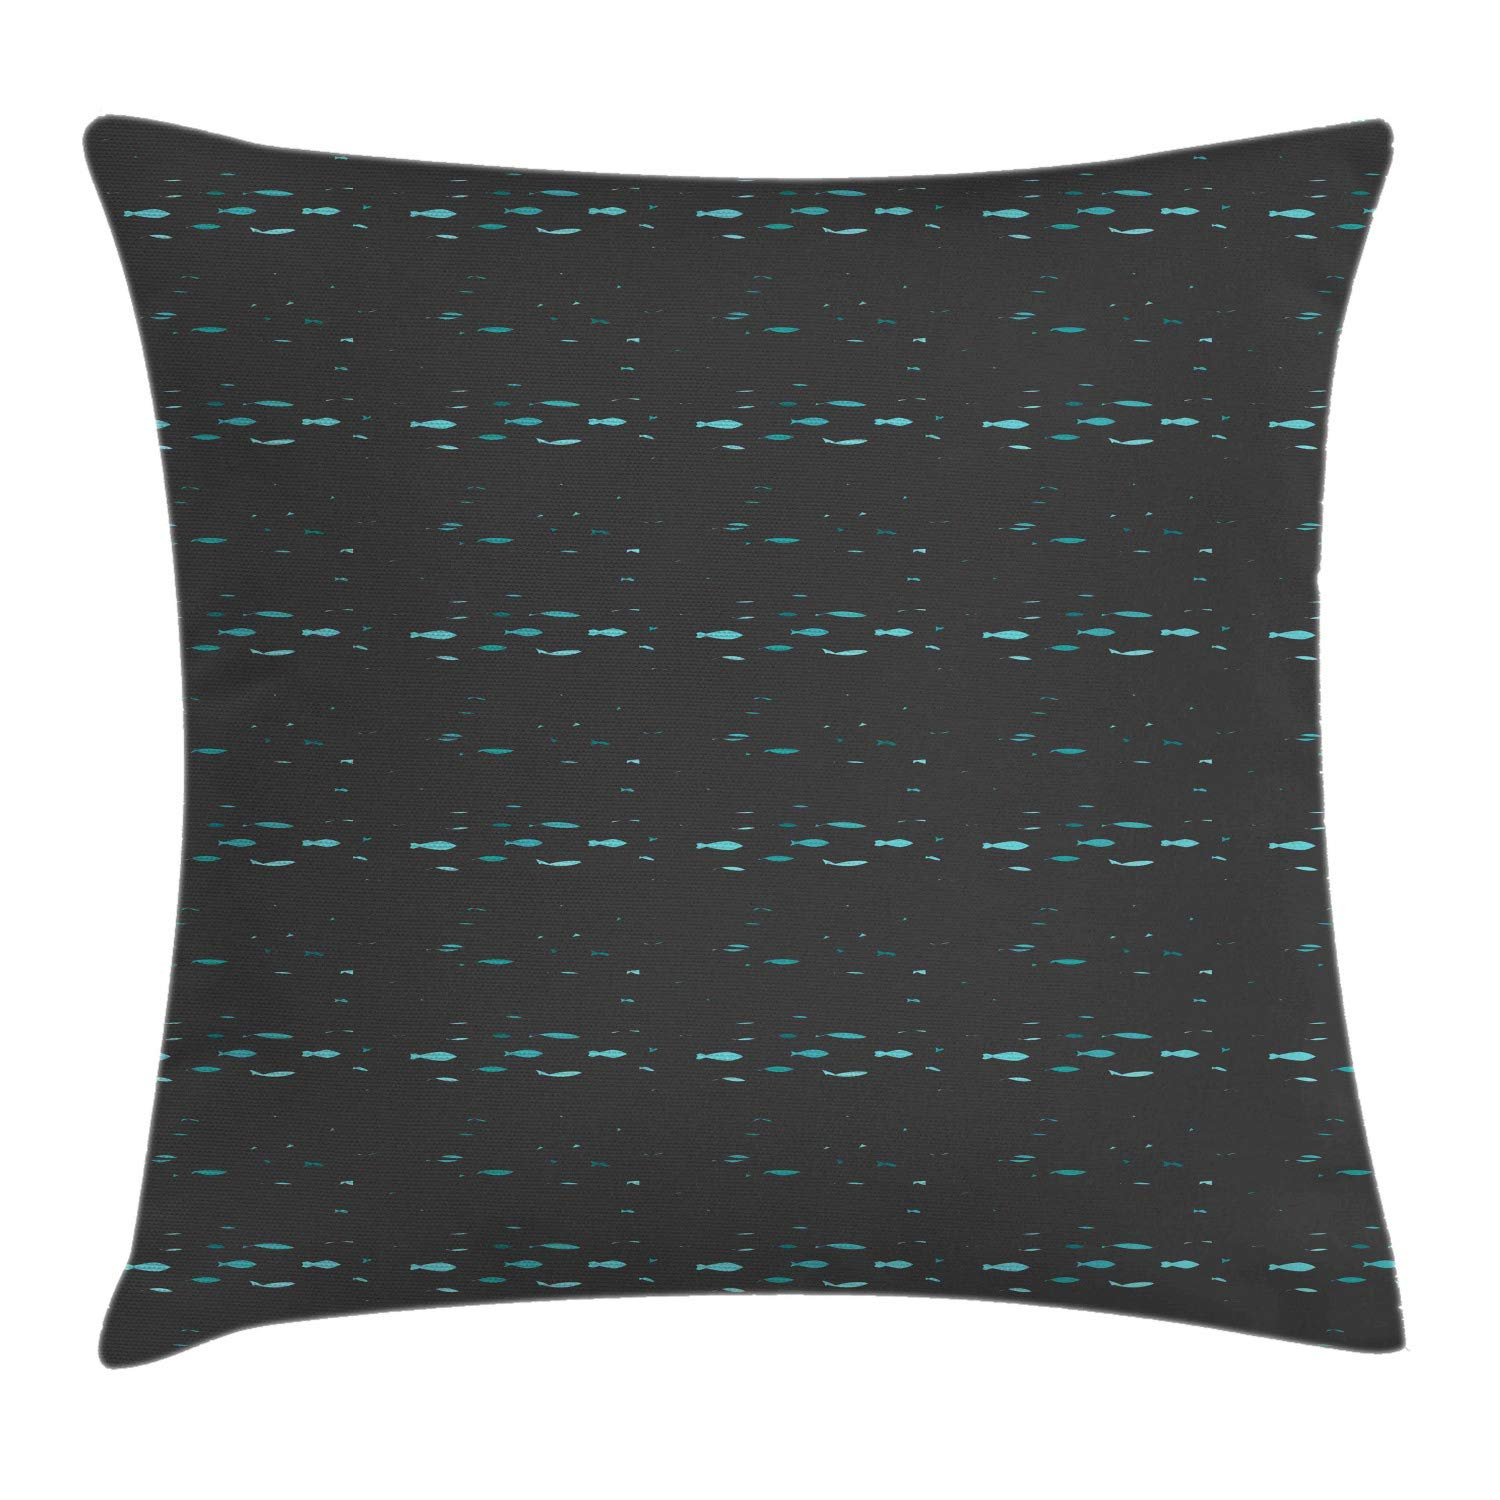 Lunarable Fish Throw Pillow Cushion Cover, Nautical Theme Nursery Underwater Creature Shoal of Fish Pattern, Decorative Square Accent Pillow Case, 24'' X 24'', Dark Grey Dark Seafoam Seafoam by Lunarable